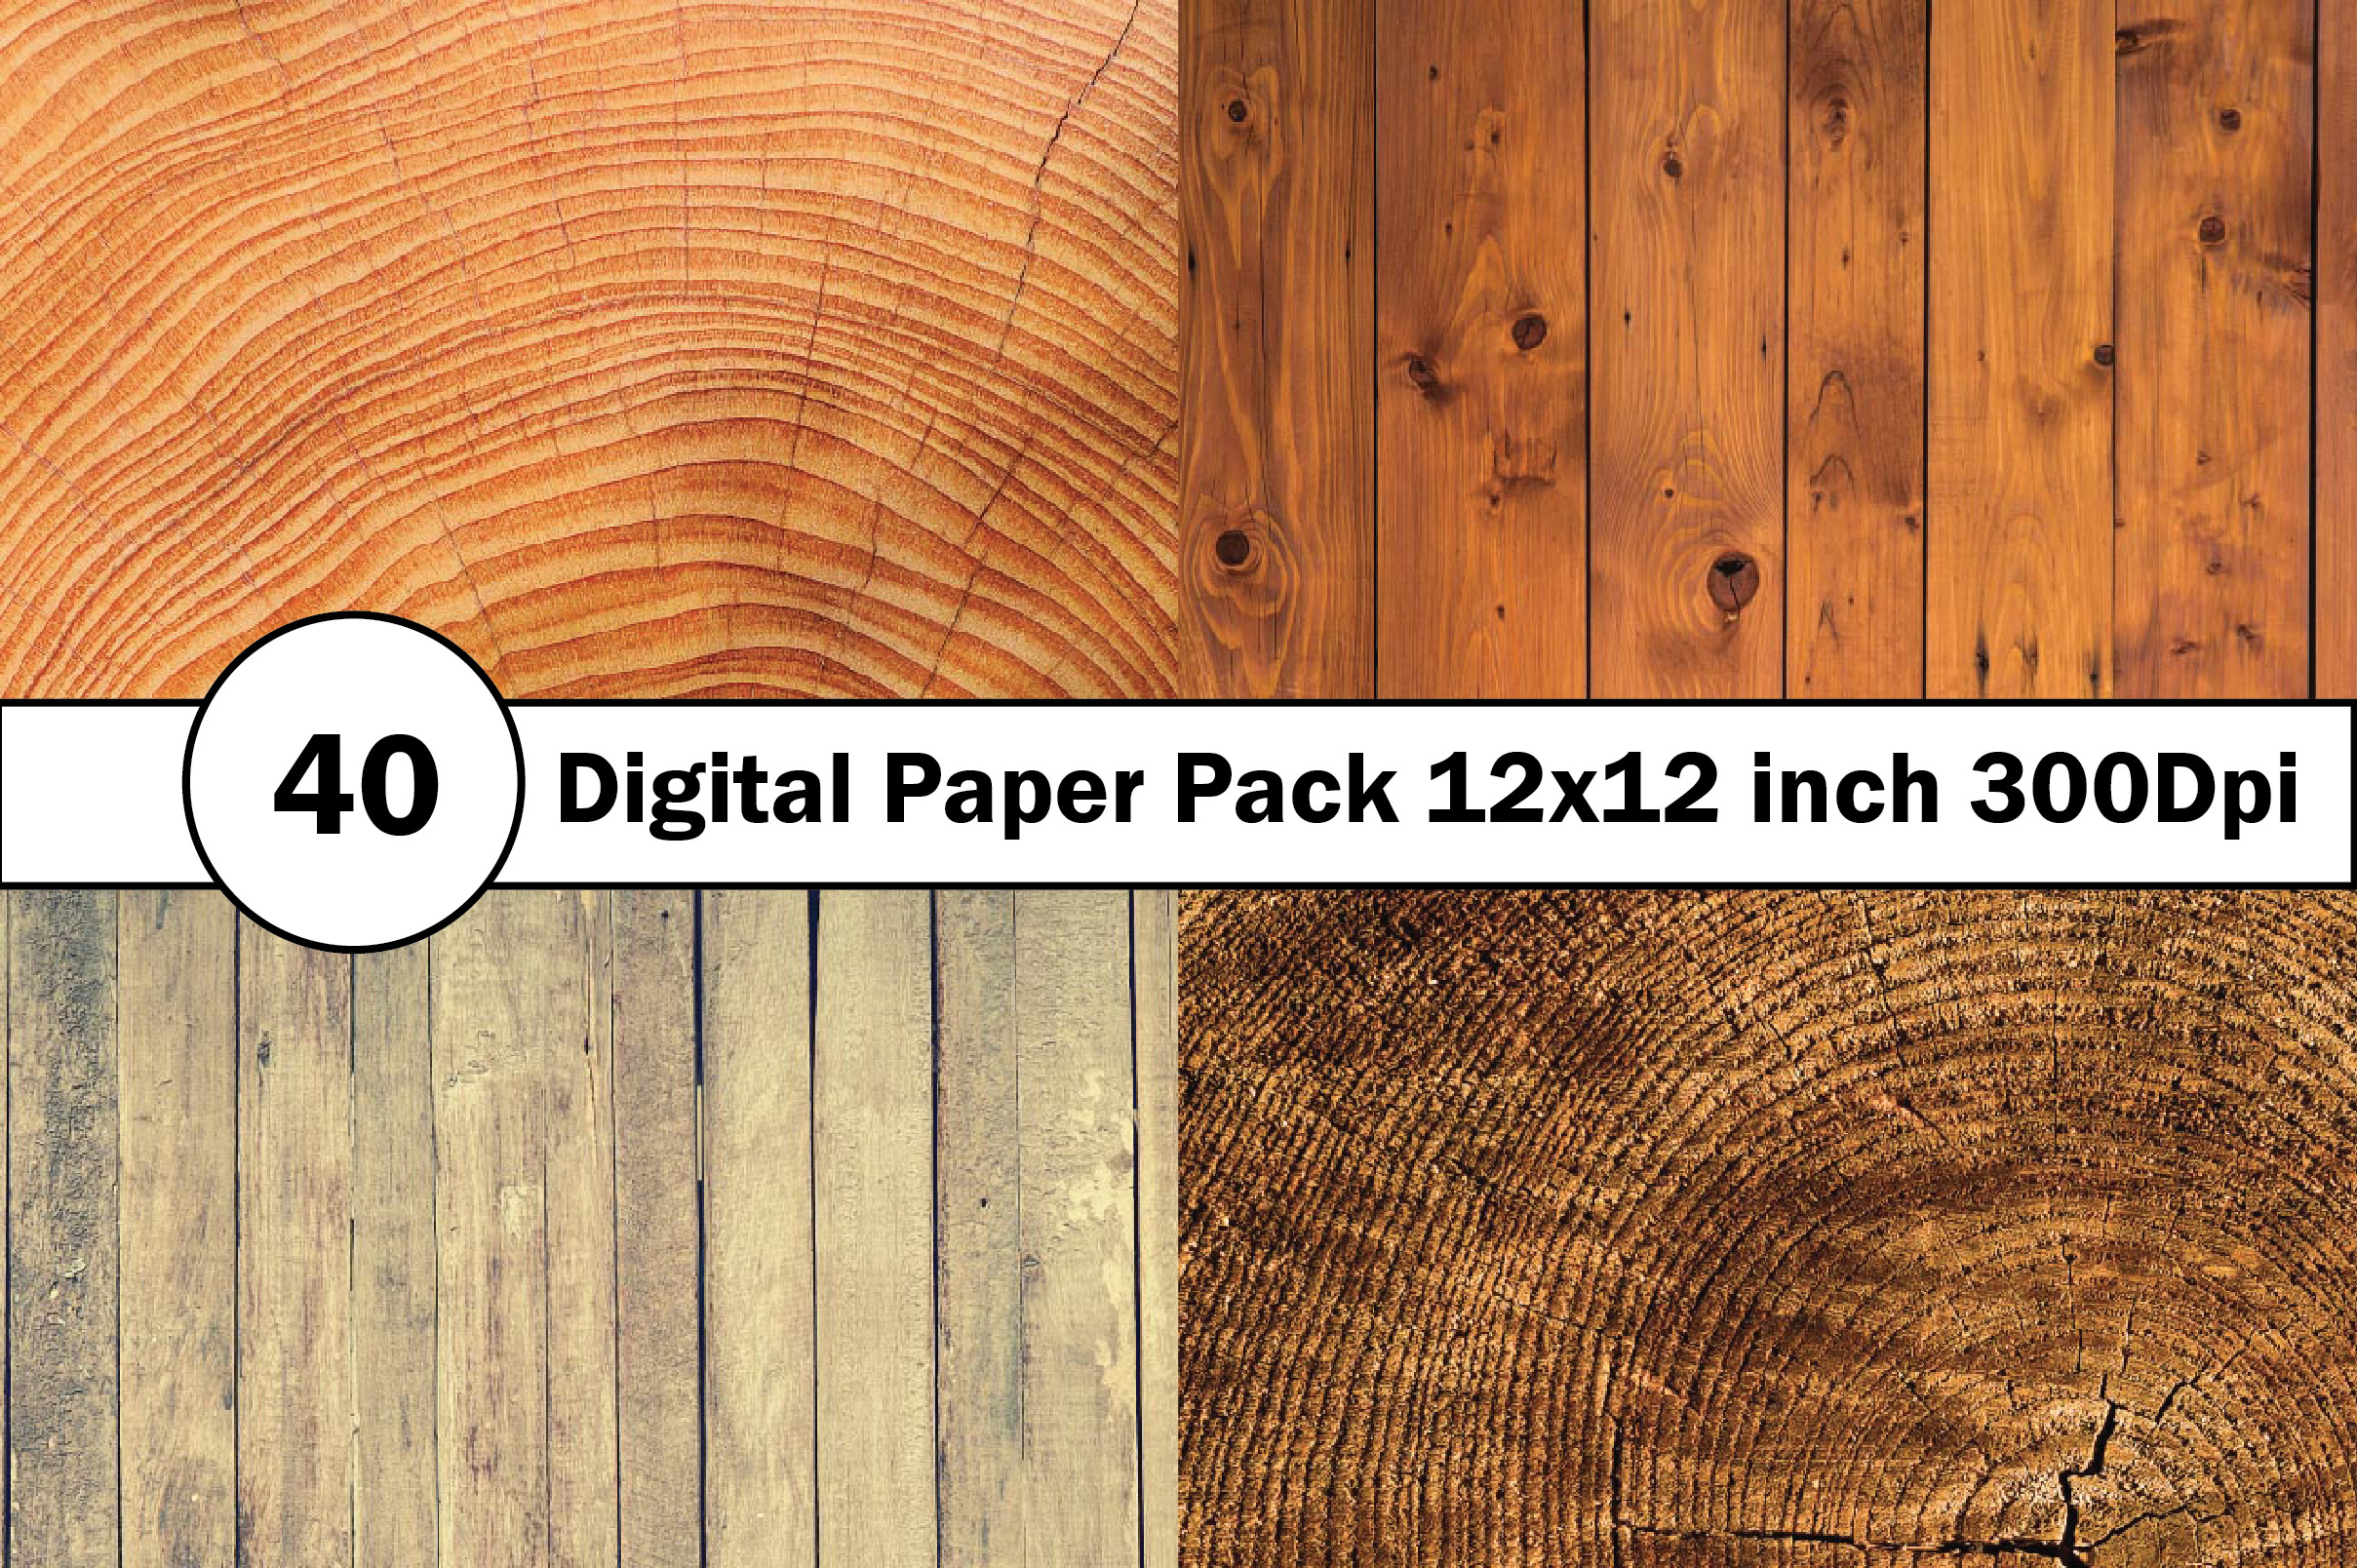 40 Digital Paper Pack 12x12 inch 300 Dpi example image 4